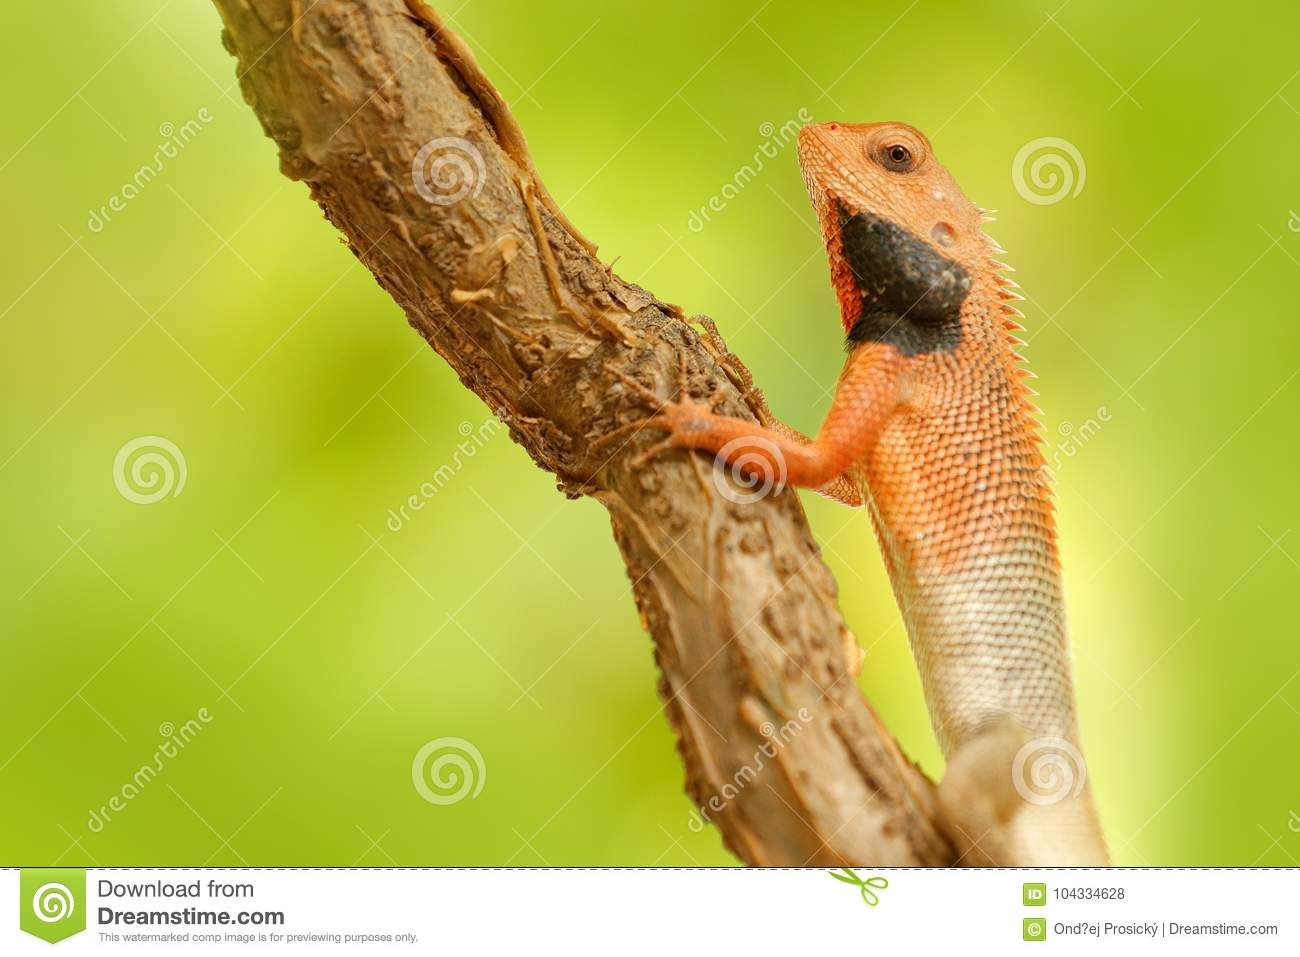 Wildlife India. Indian Garden Lizard Calotes versicolor, detail eye portrait of exotic tropic animal in the green nature habitat.